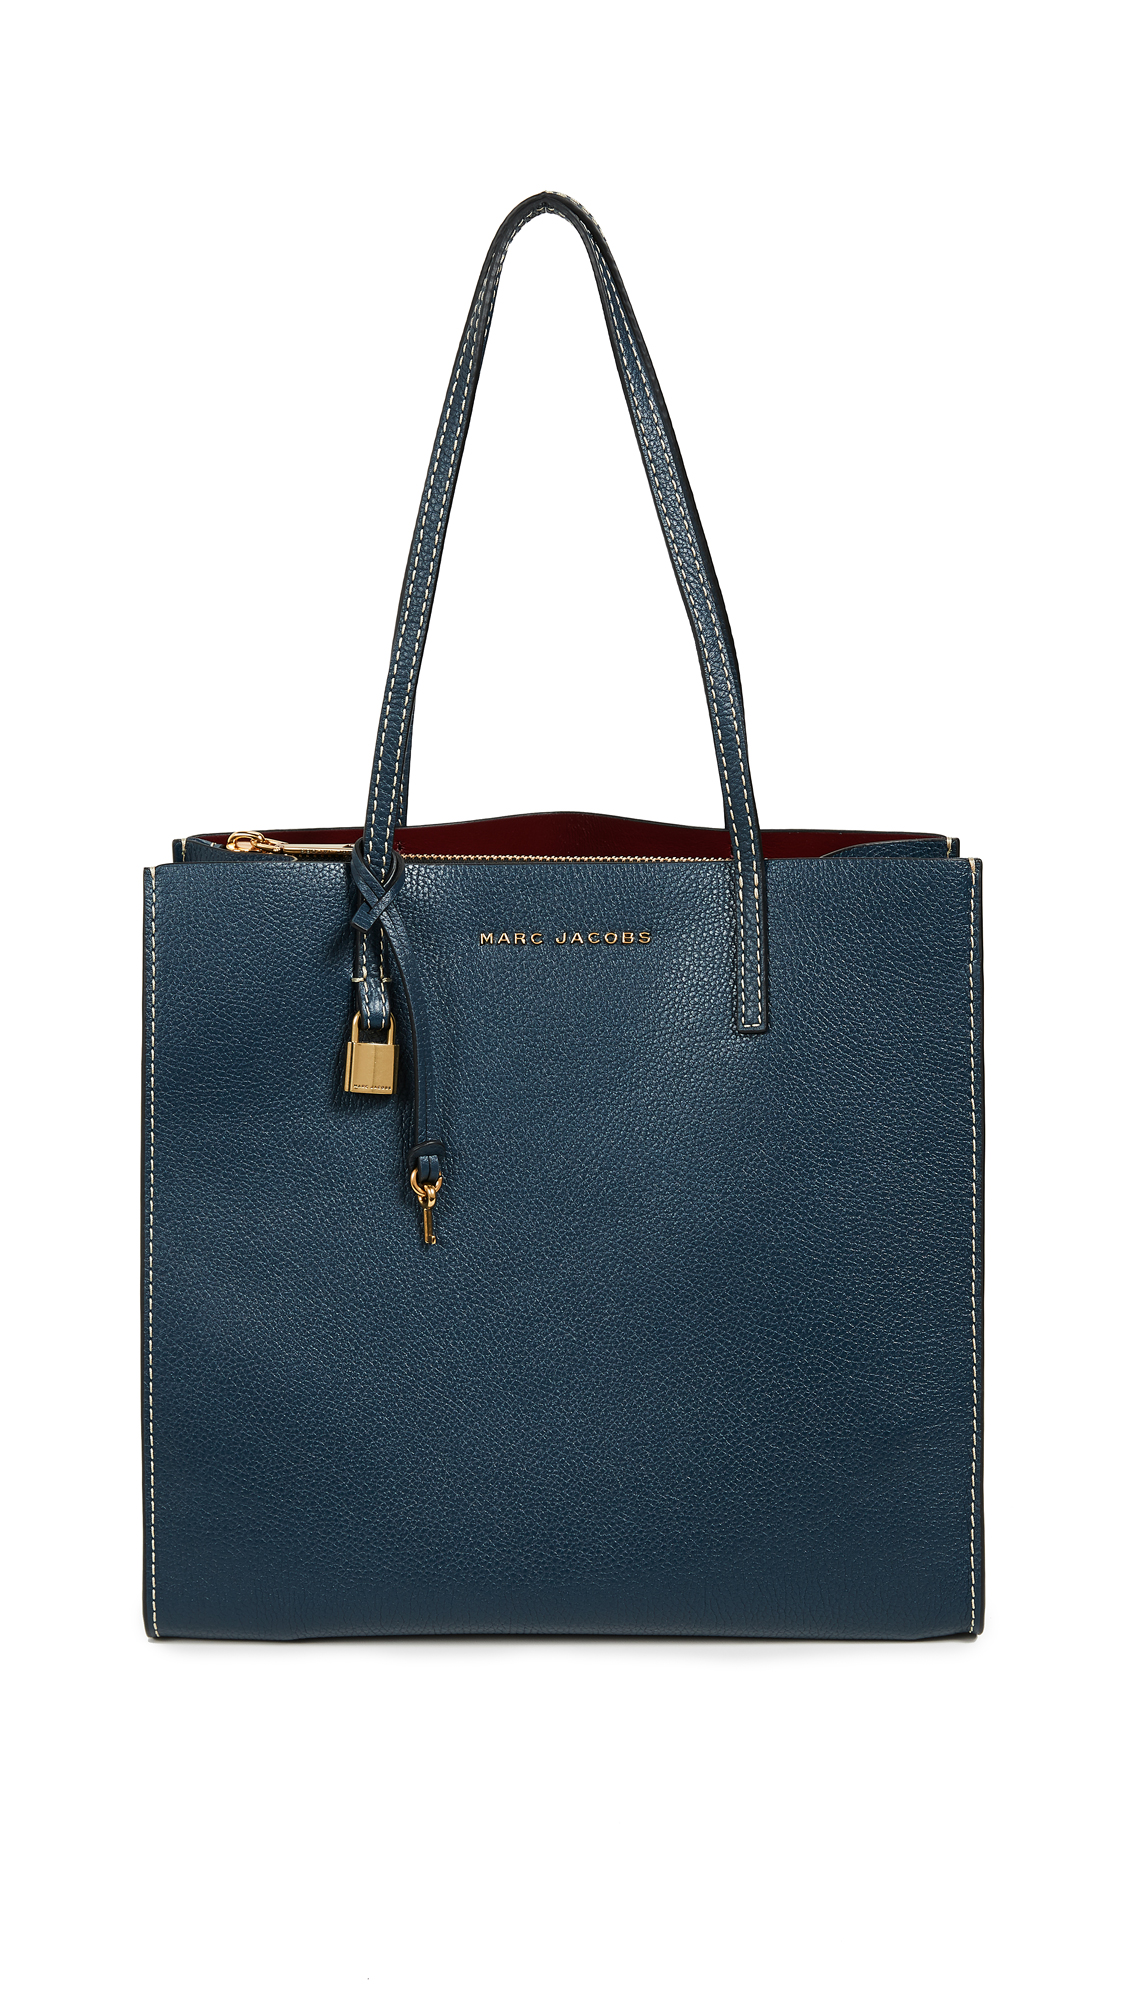 Marc Jacobs The Grind Shopper Tote Bag - Blue Sea